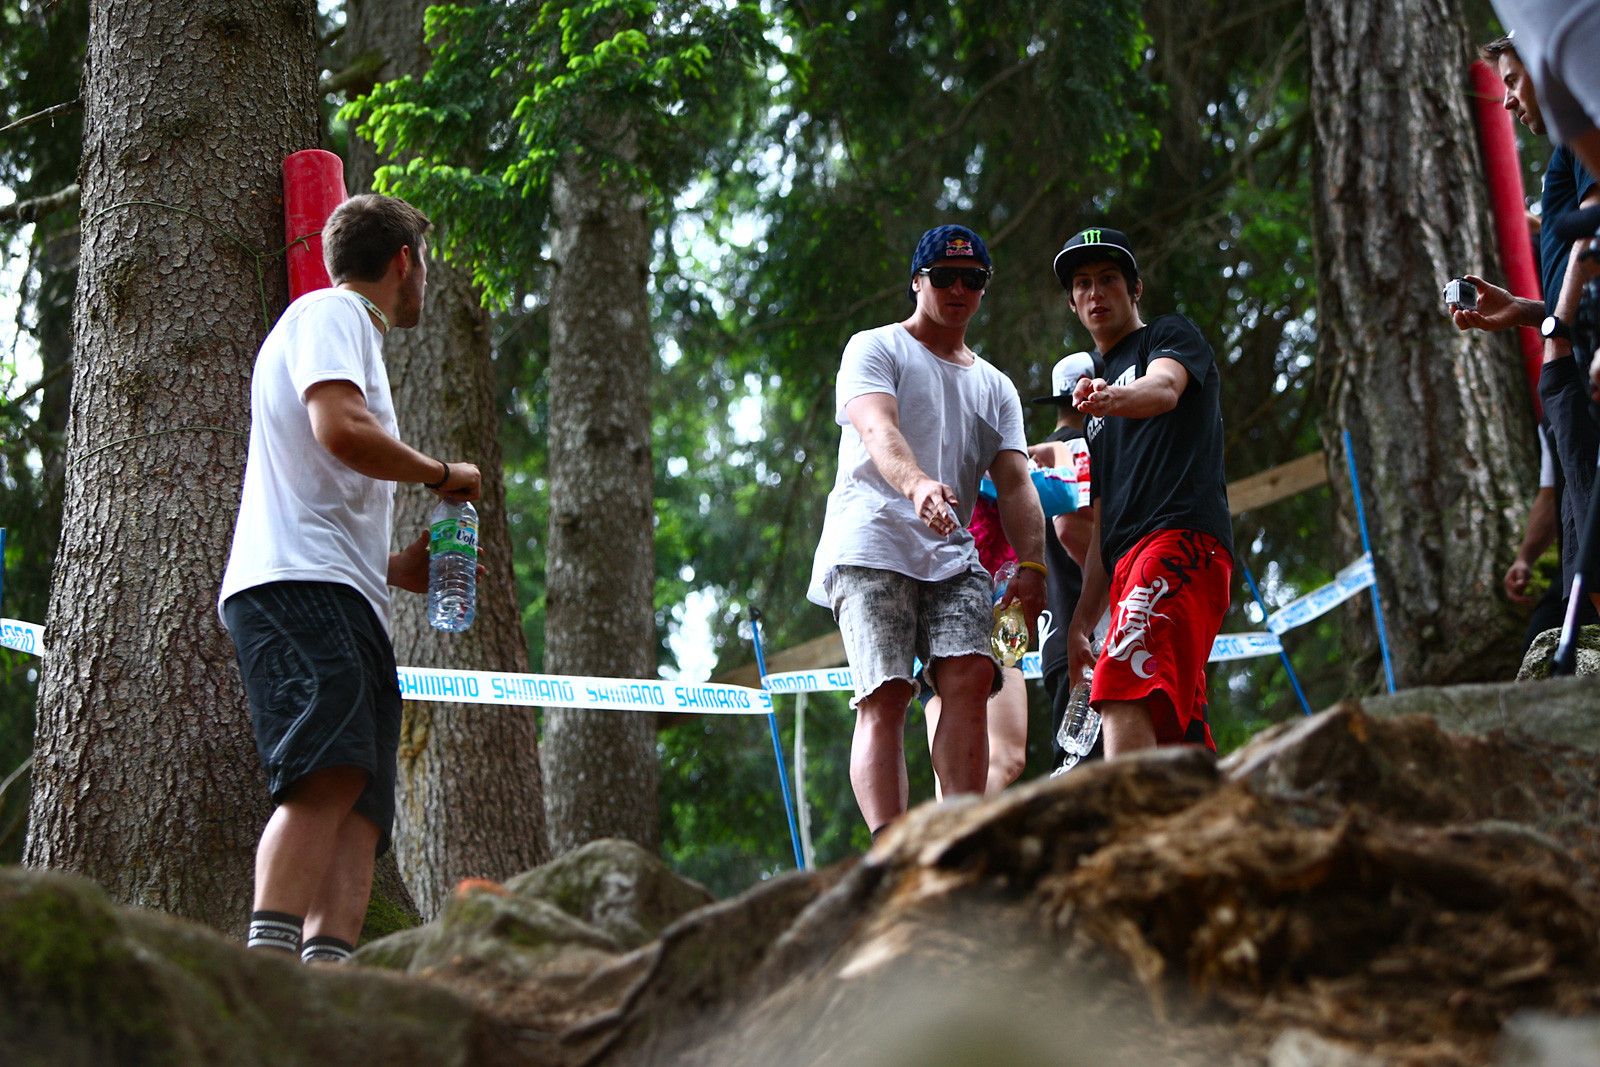 Brook MacDonald and Josh Bryceland Track Walk - 2012 UCI World Cup, Val di Sole Day 1 - Mountain Biking Pictures - Vital MTB